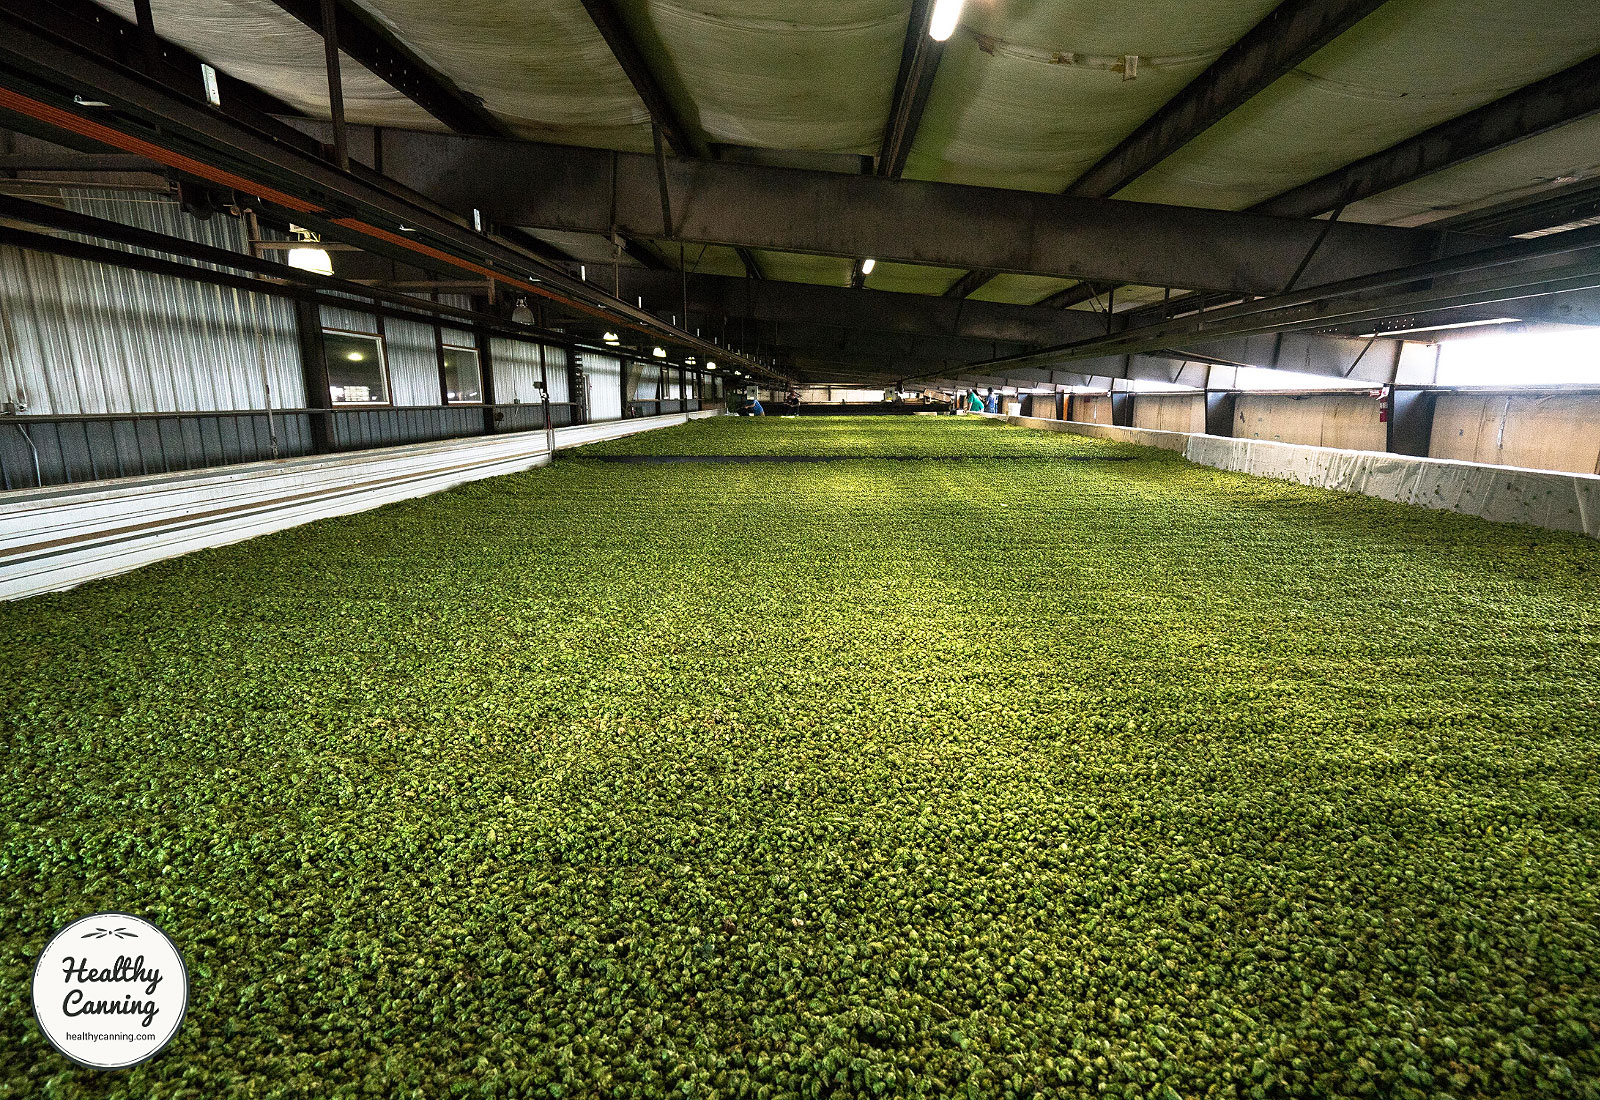 Large hop drying room